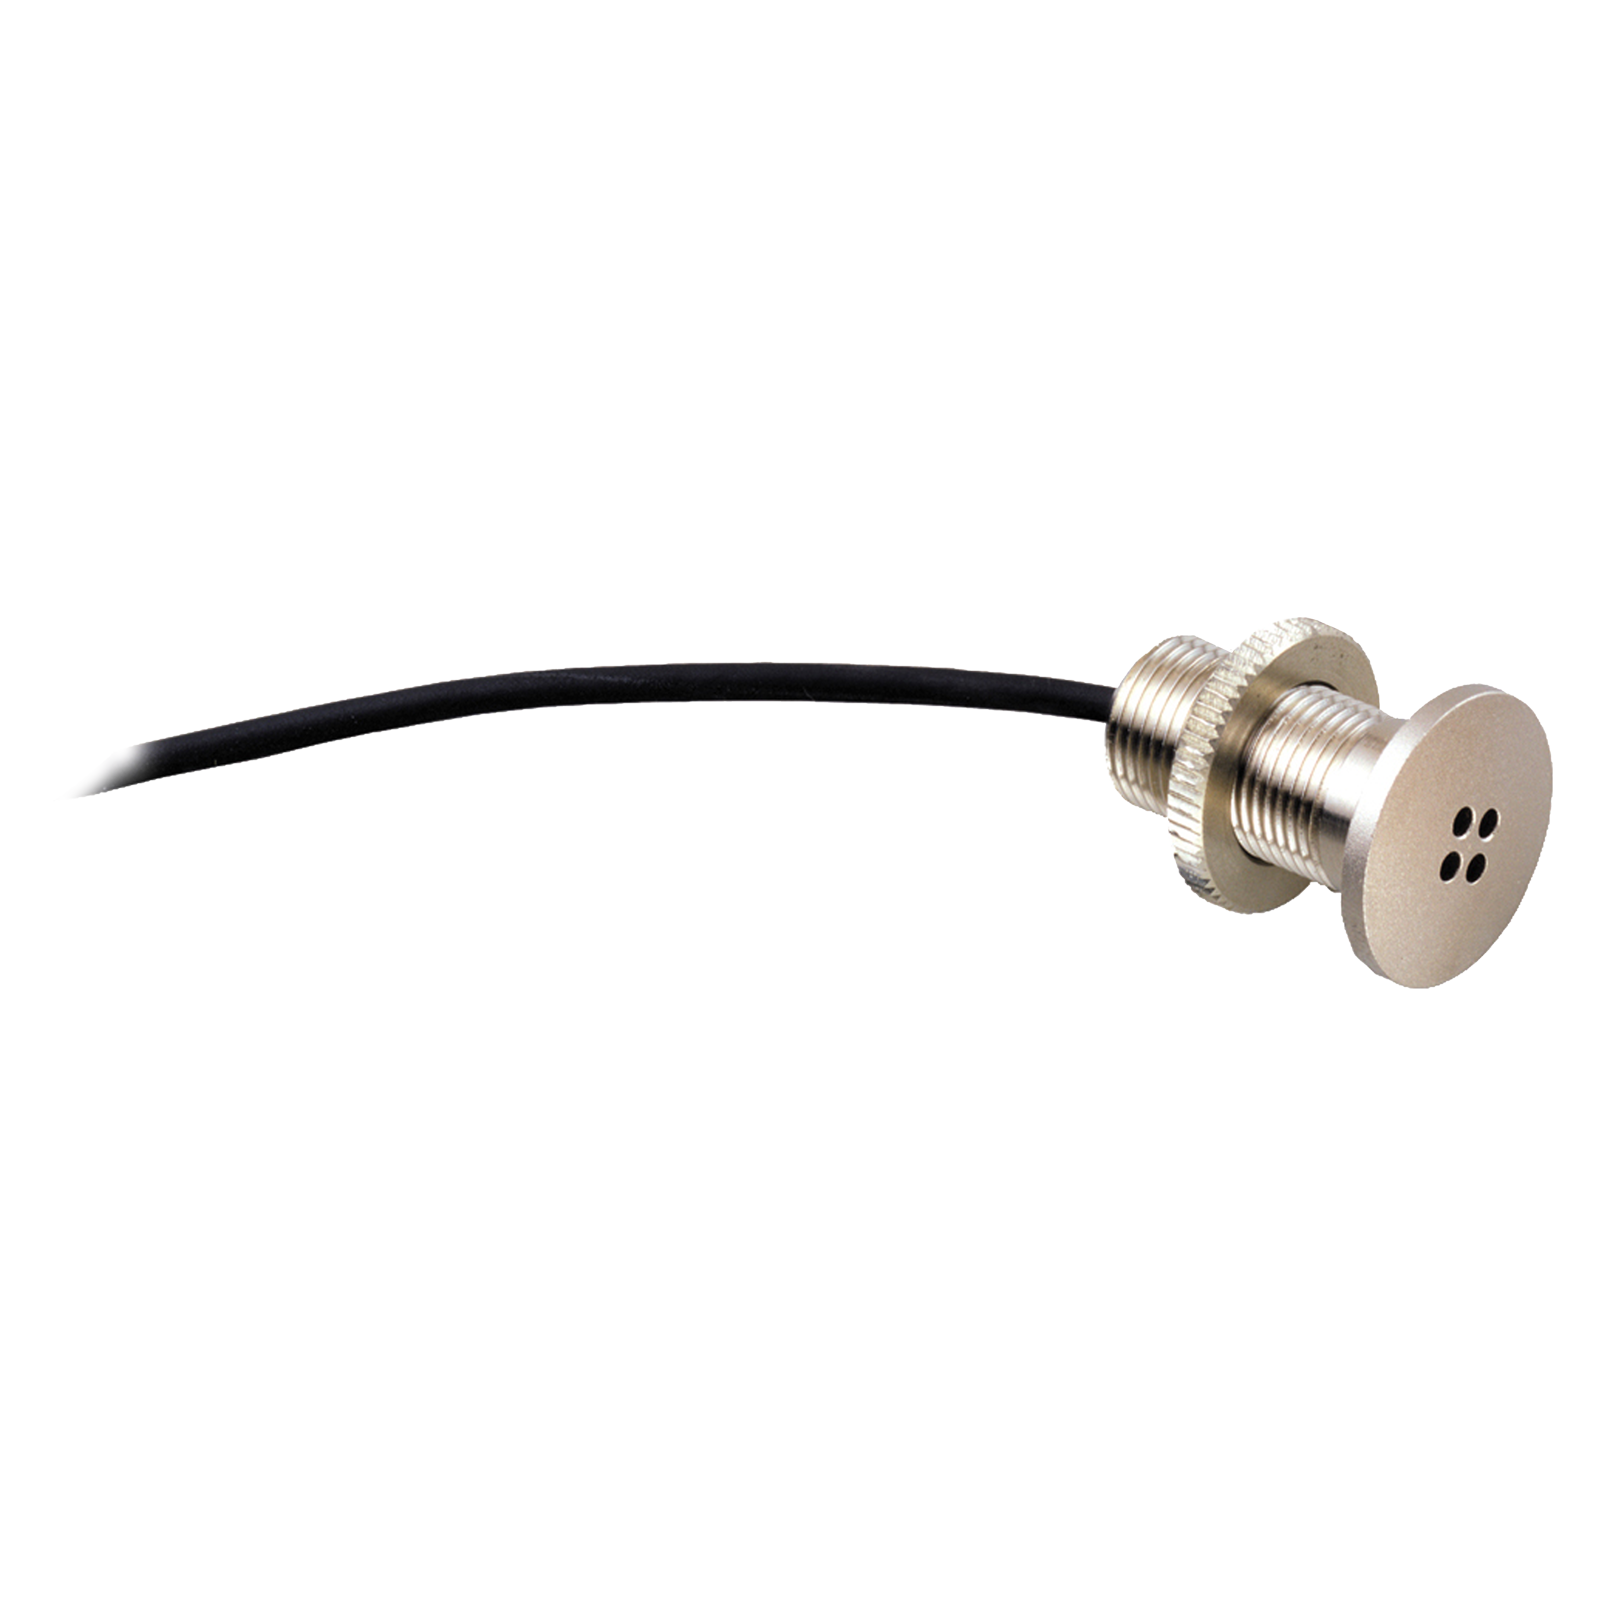 C562 CM - Nickel - Professional flush-mount boundary layer microphone - Hero